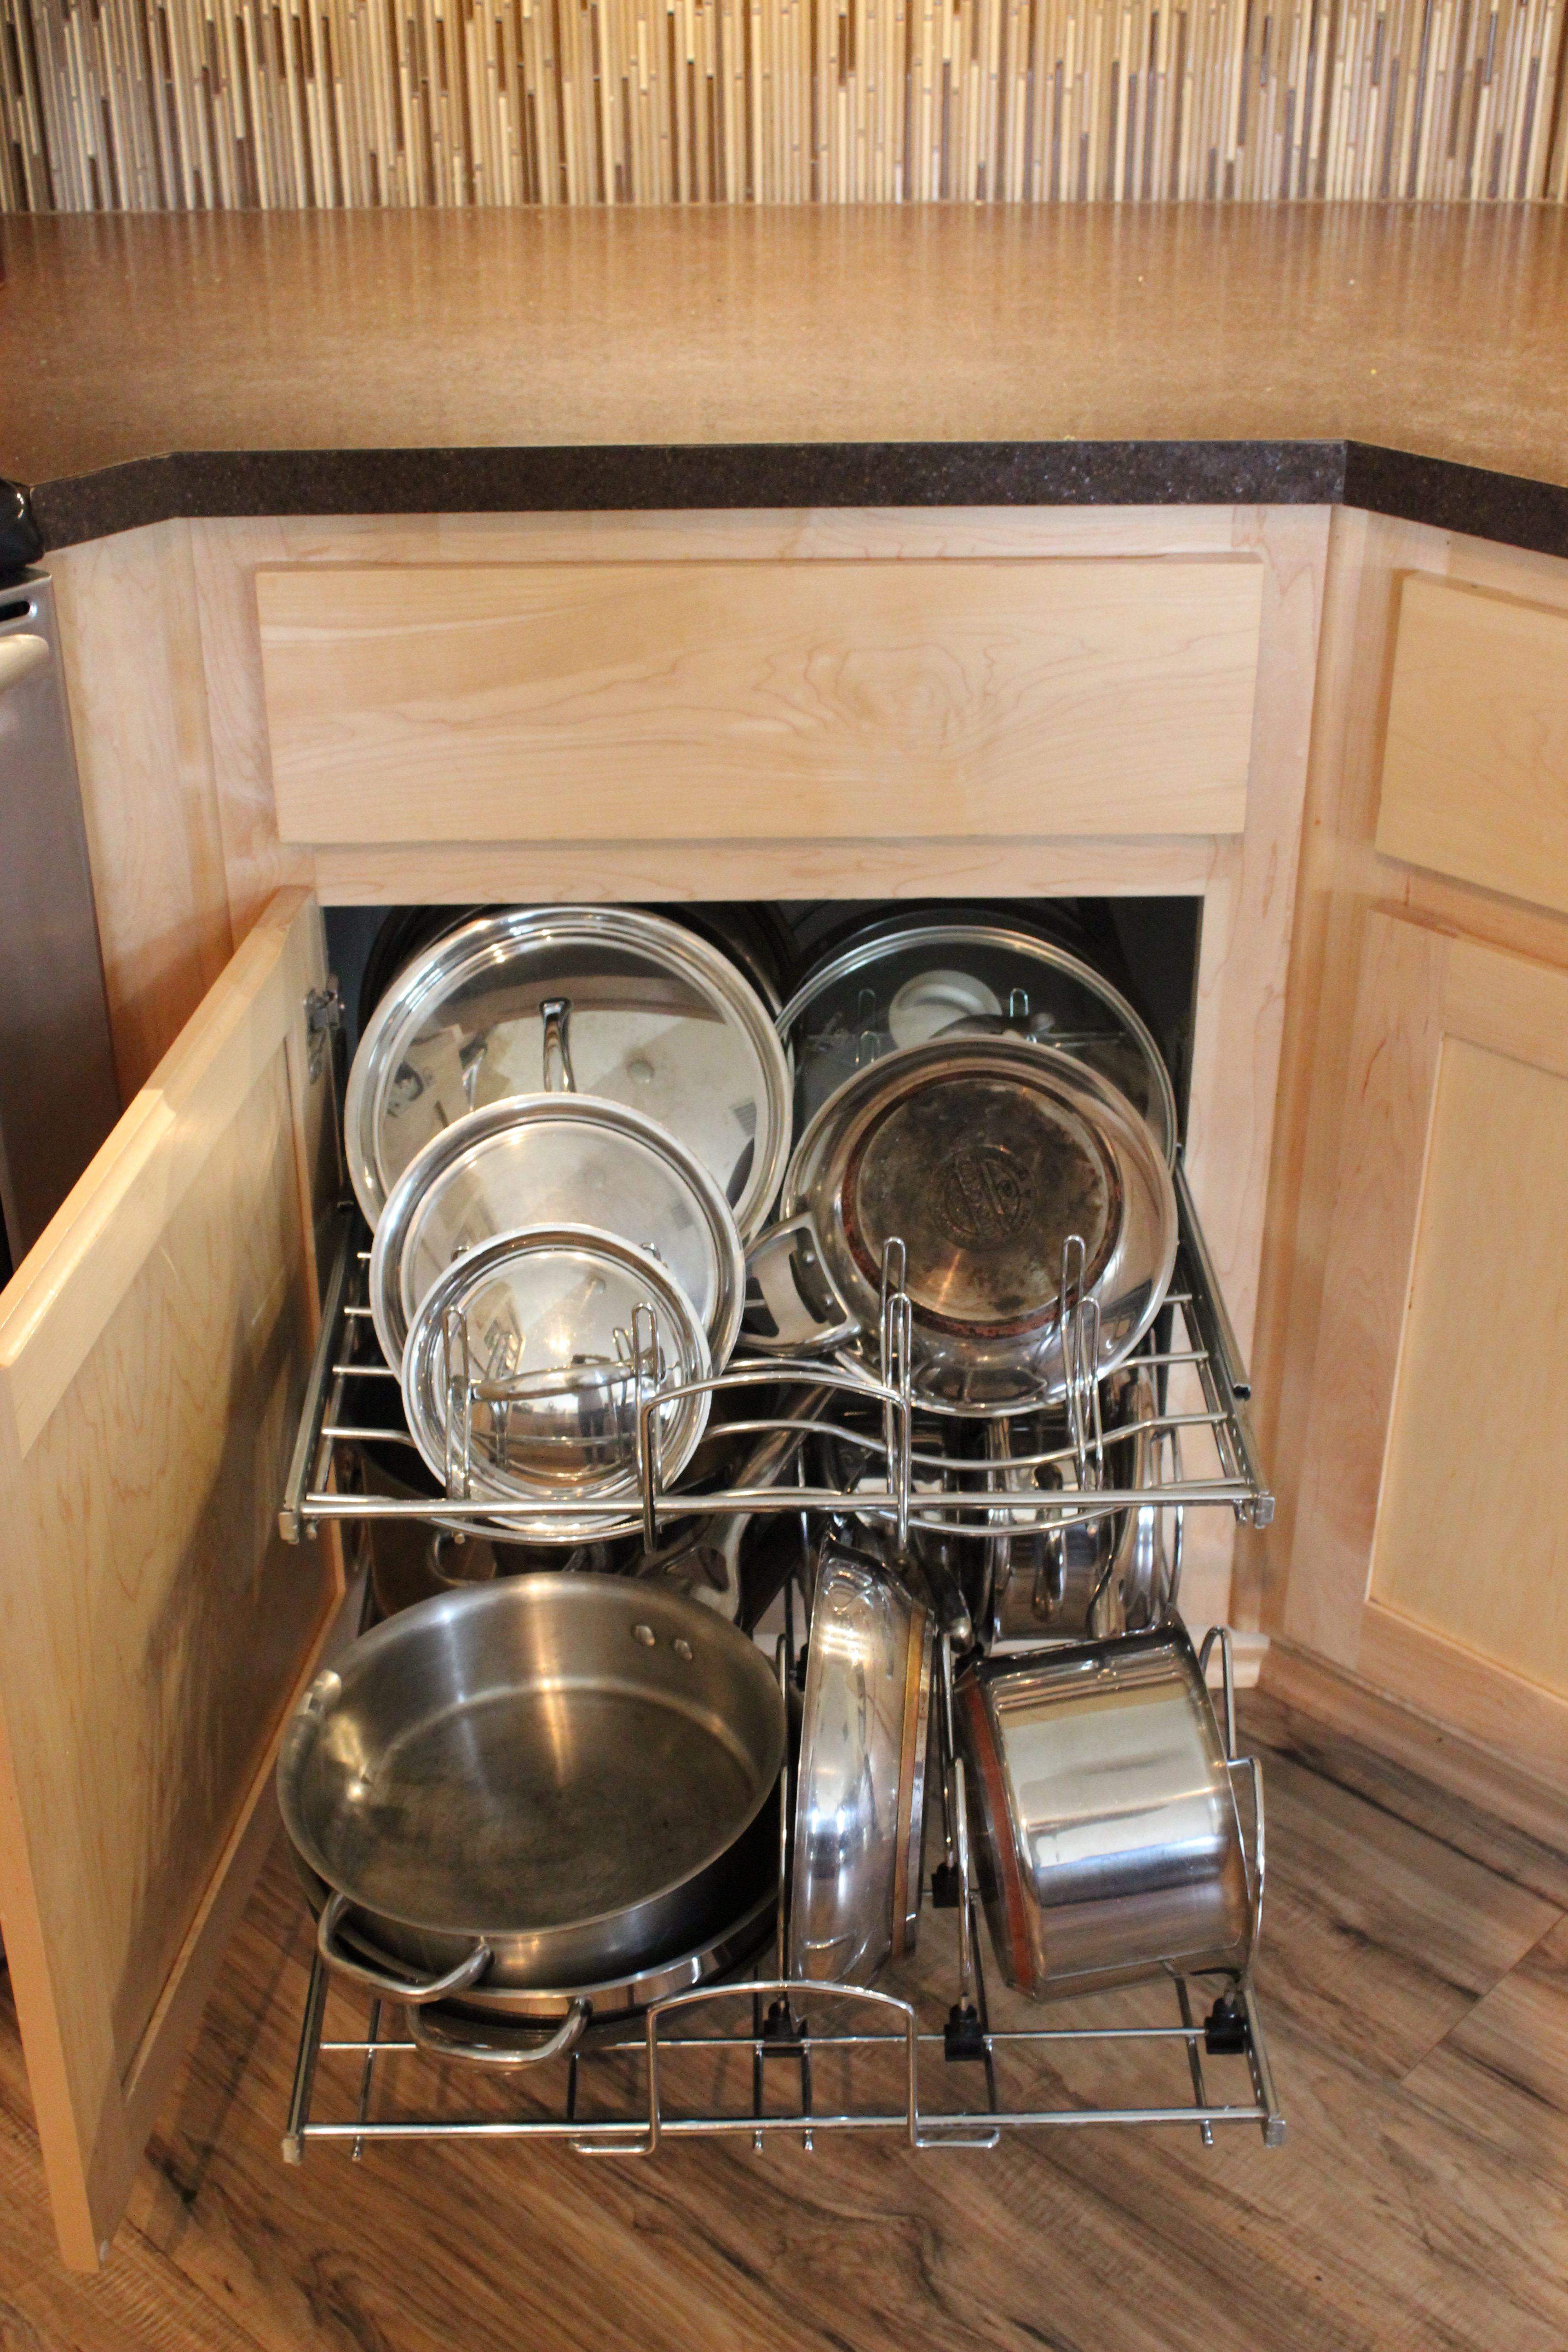 cookware pull -out, kitchen storage, chrome pots and pans storage, pots and pans pull-out